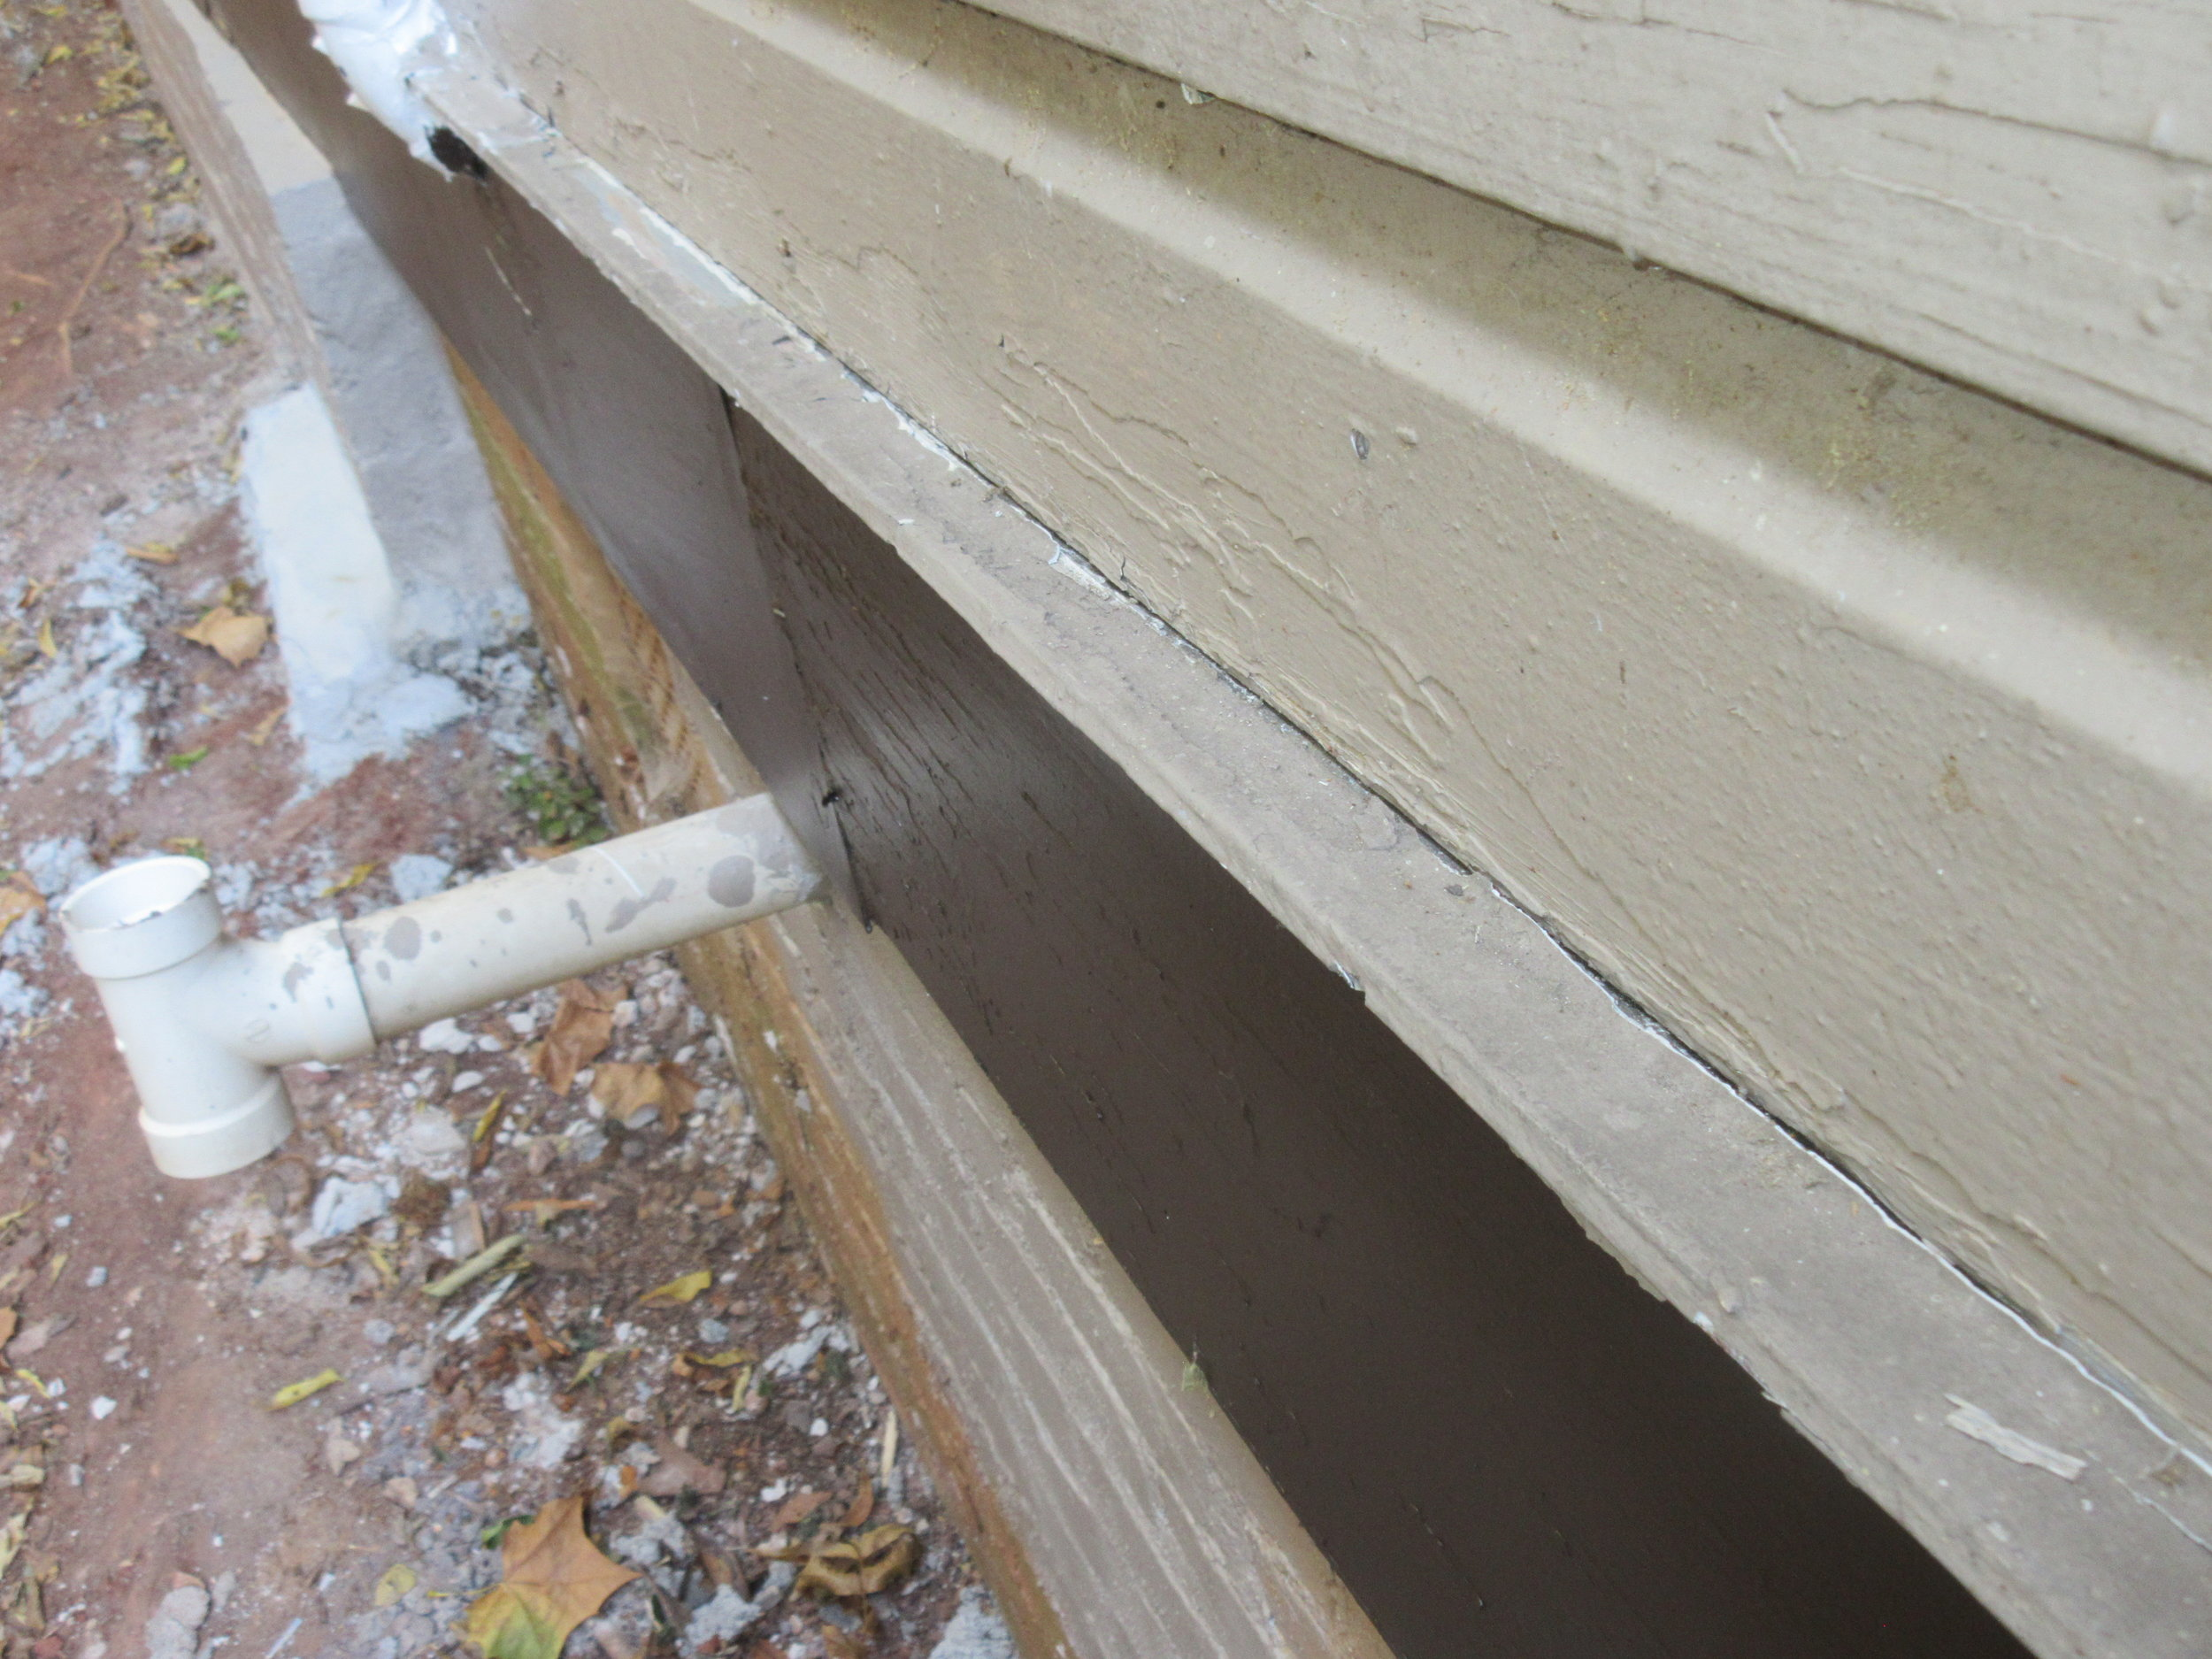 Drip edge for left side trim is angled back towards house where caulk is missing. Recommend drip edge be adjusted, properly affixed and caulked as needed.